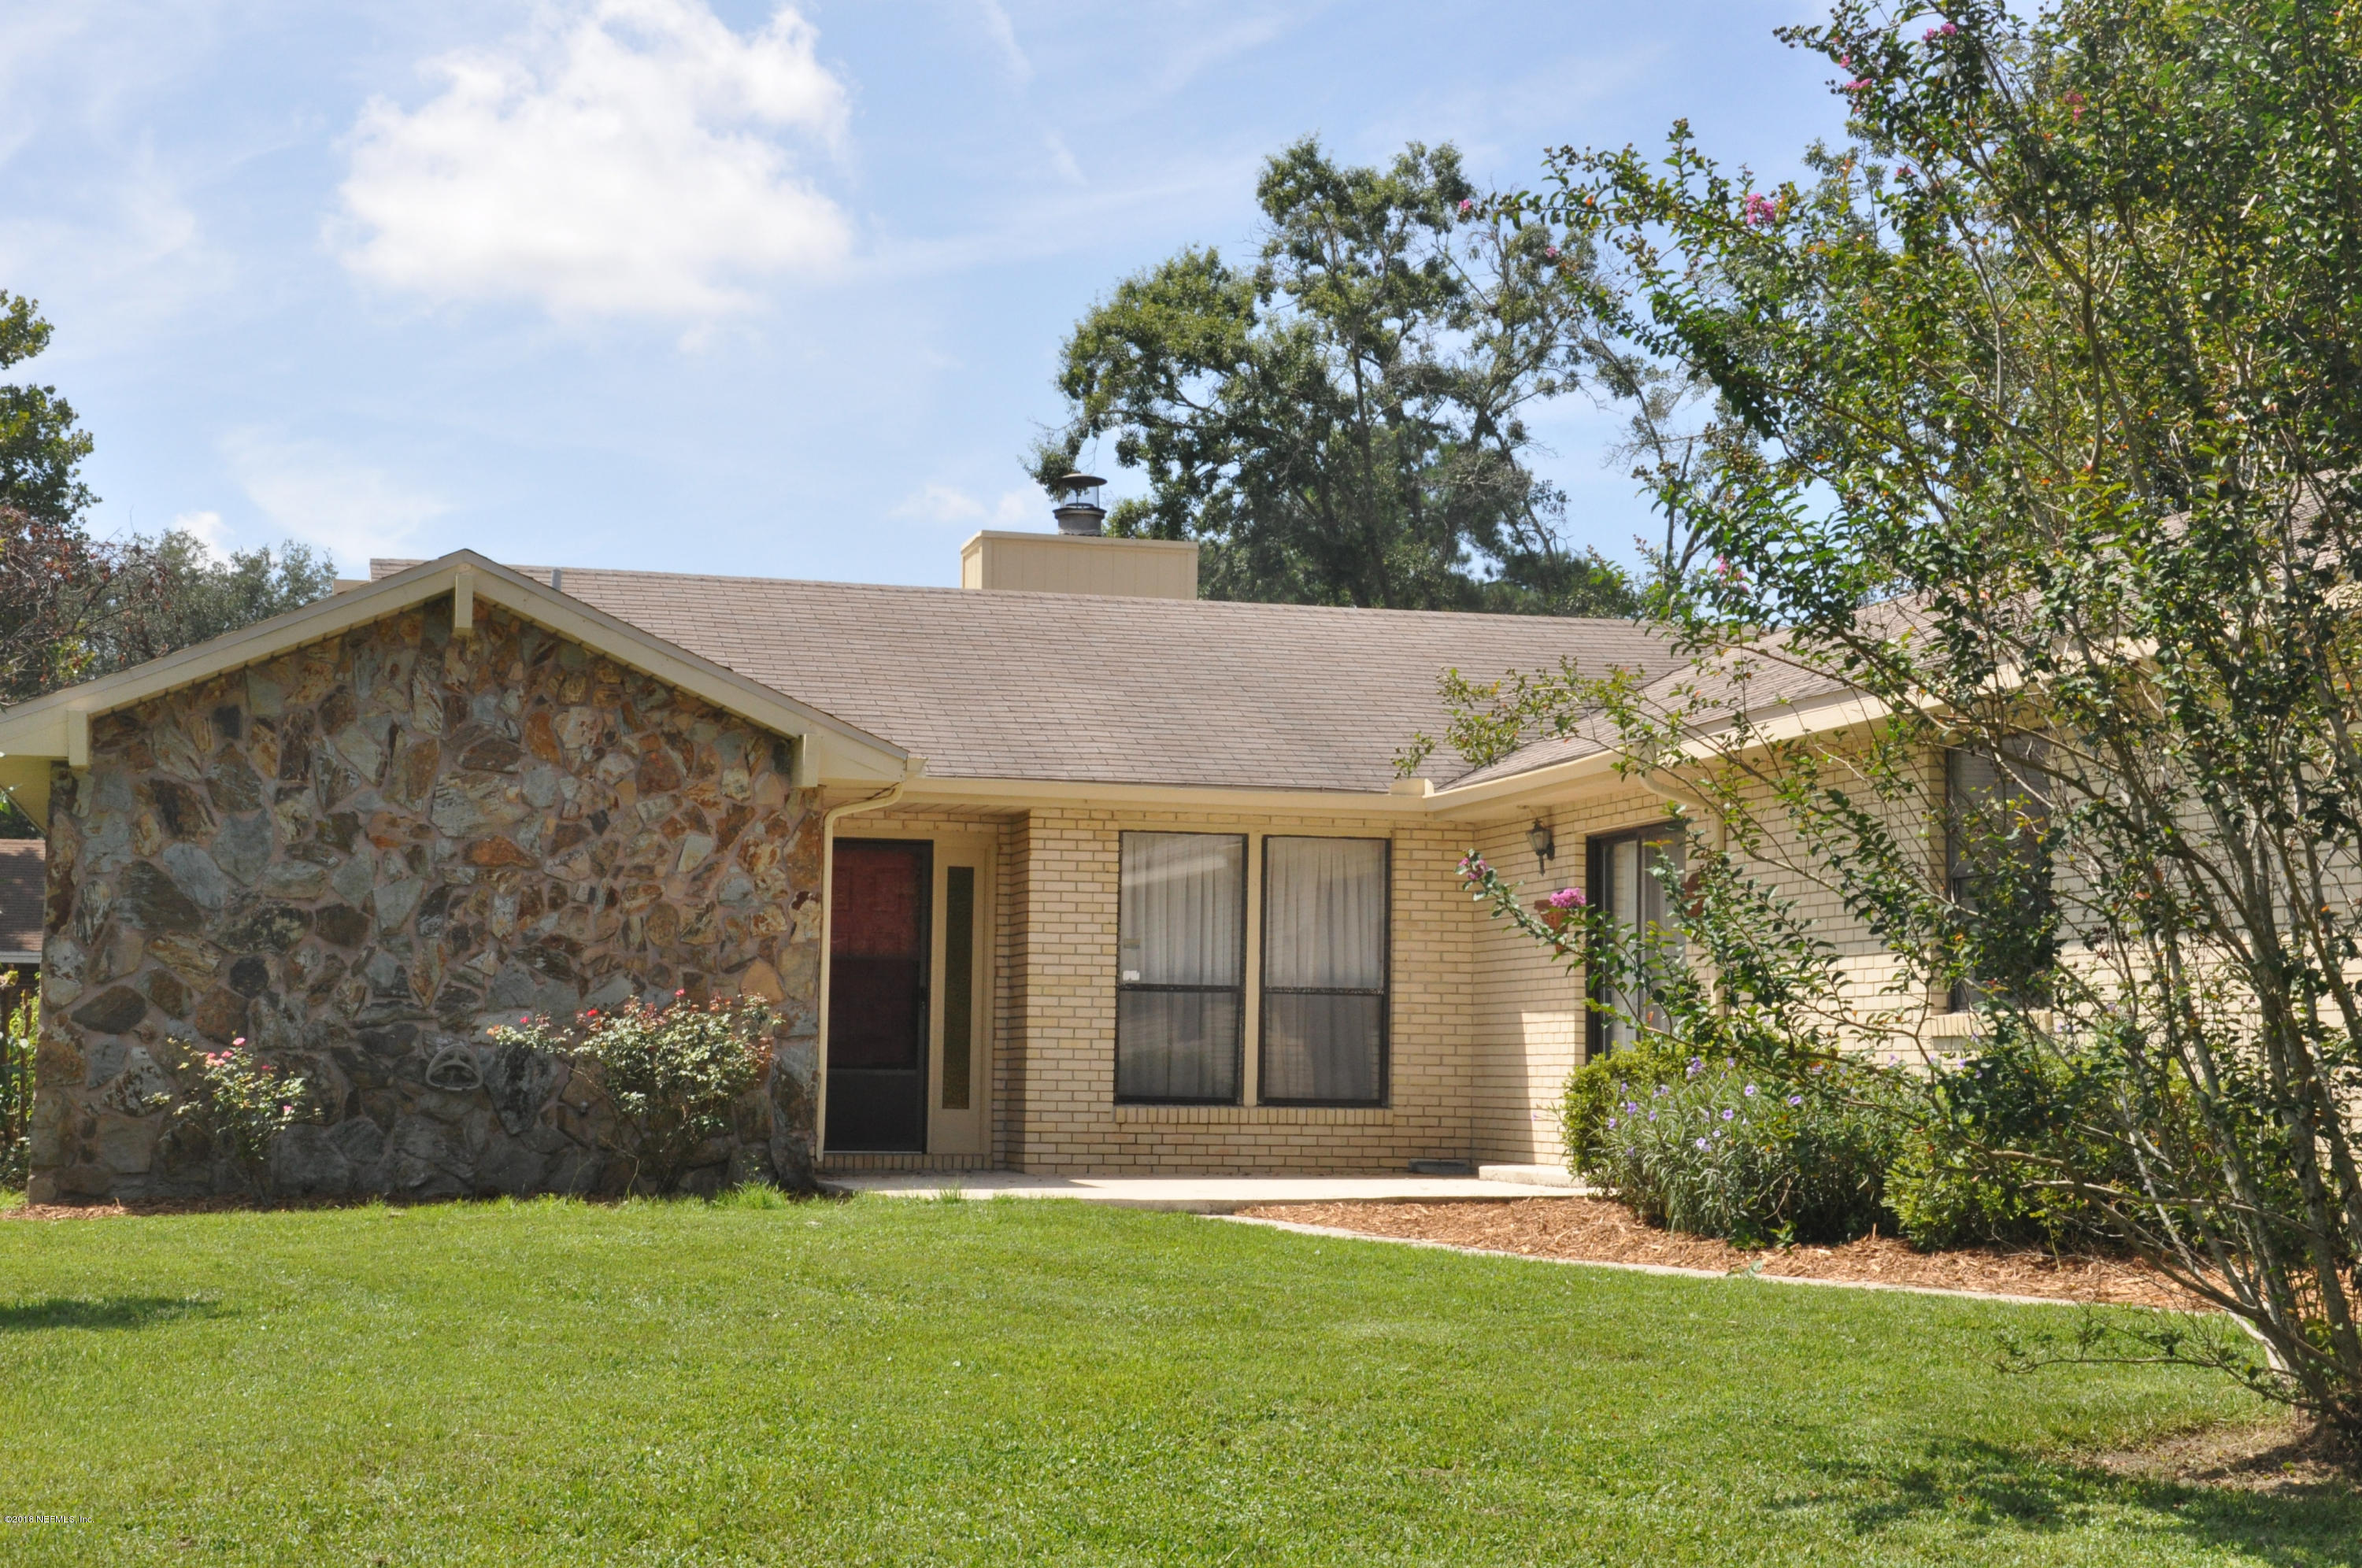 7232 HOLIDAY HILL, JACKSONVILLE, FLORIDA 32216, 3 Bedrooms Bedrooms, ,2 BathroomsBathrooms,Residential - single family,For sale,HOLIDAY HILL,953510